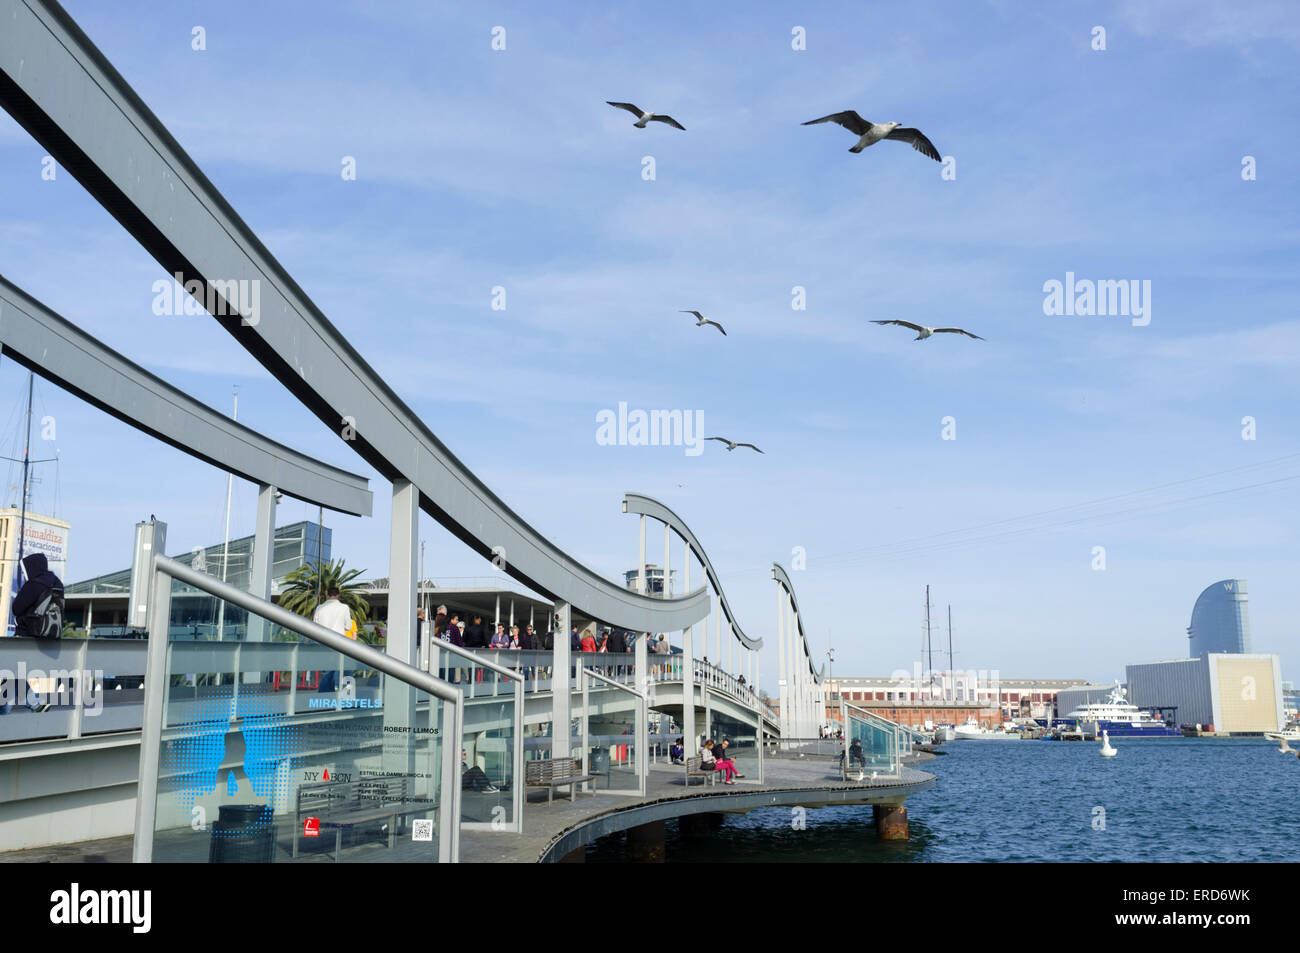 Seagulls flying over the Maremagnum mall at Port Vell harbour, Barcelona, Spain - Stock Image